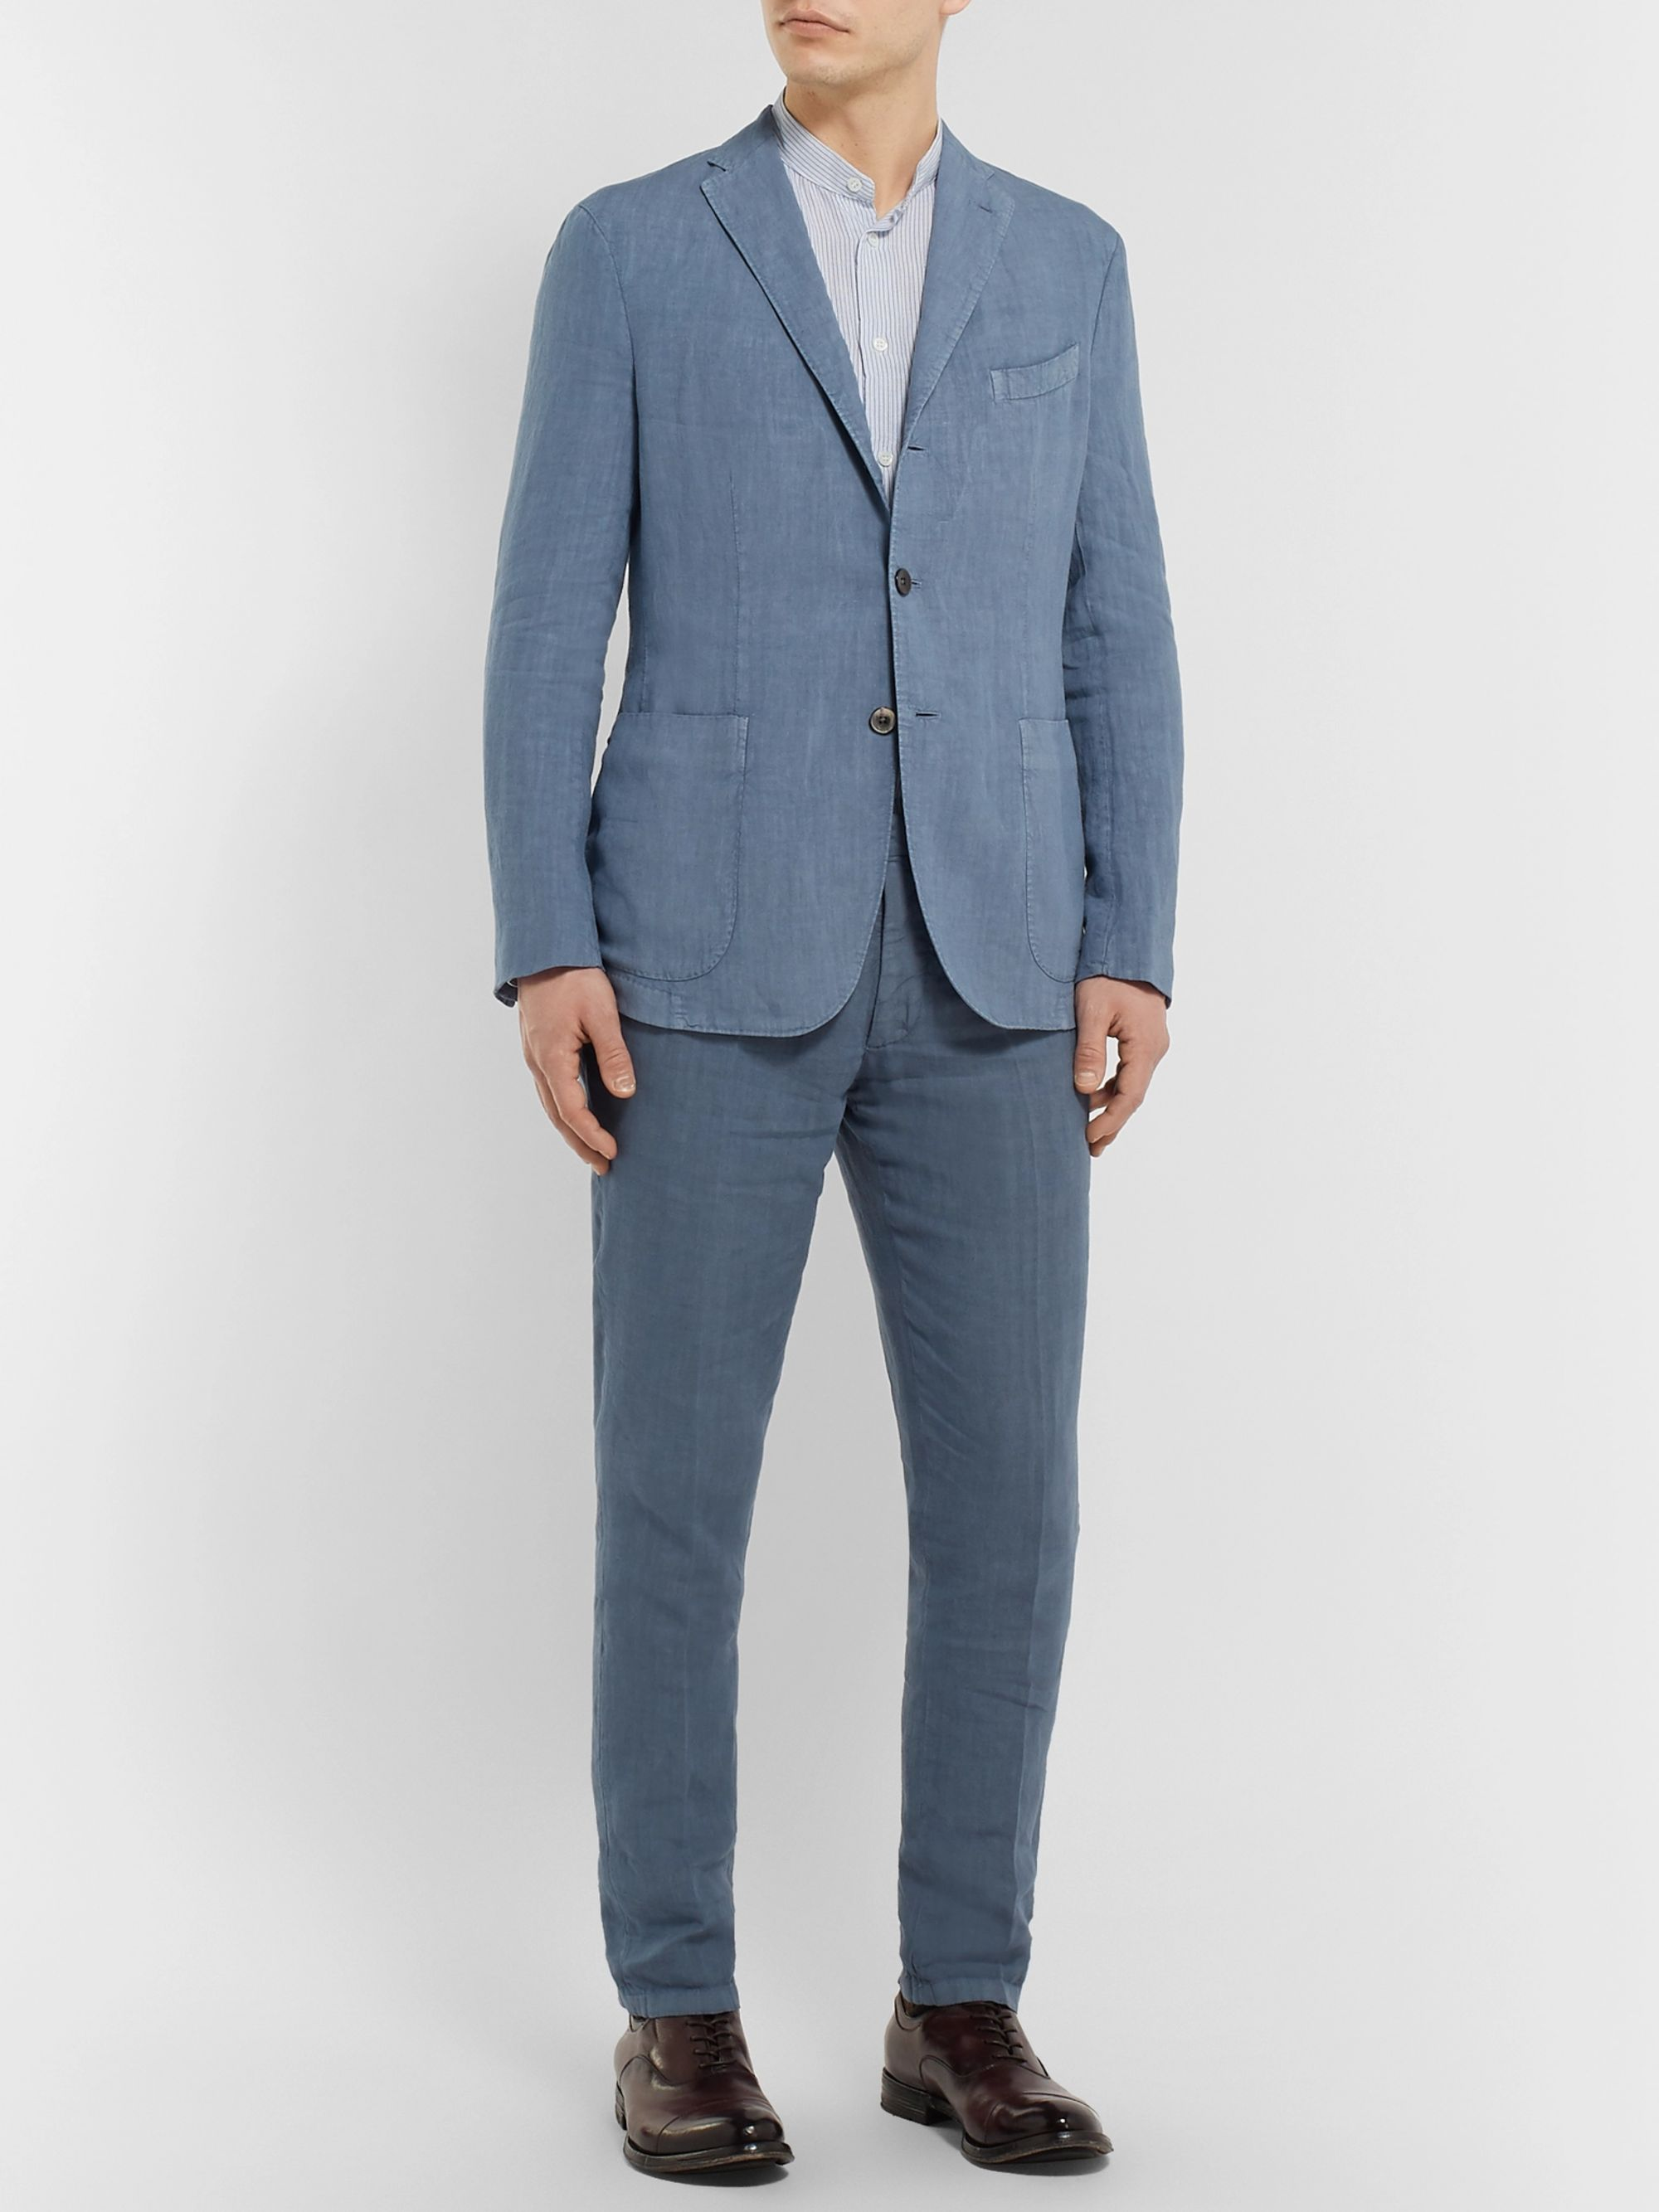 Boglioli Olive K-Jacket Unstructured Linen Suit Jacket